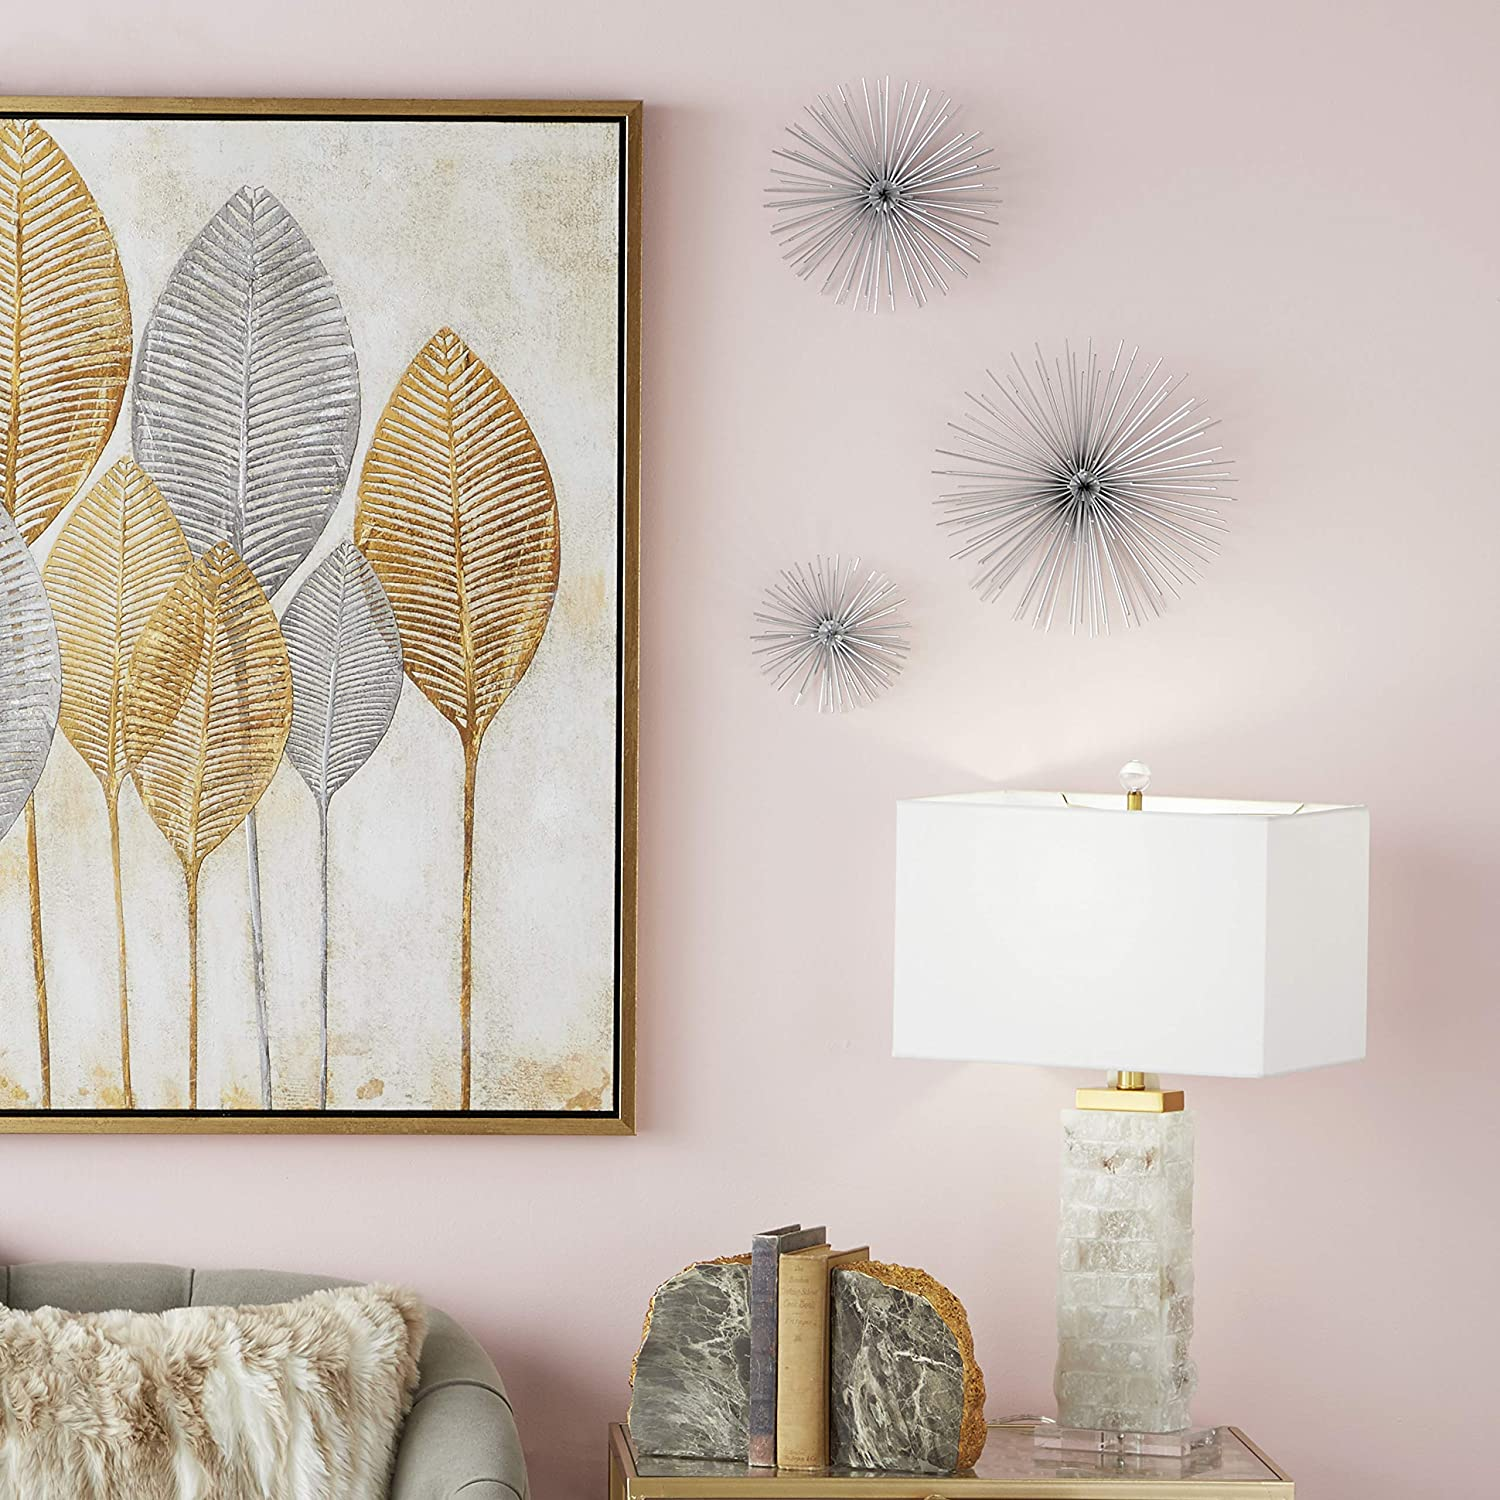 """Contemporary Style 3D Round Silver Metal Starburst Wall Decor Sculptures, Set of 3: 6"""", 9"""", 12"""""""